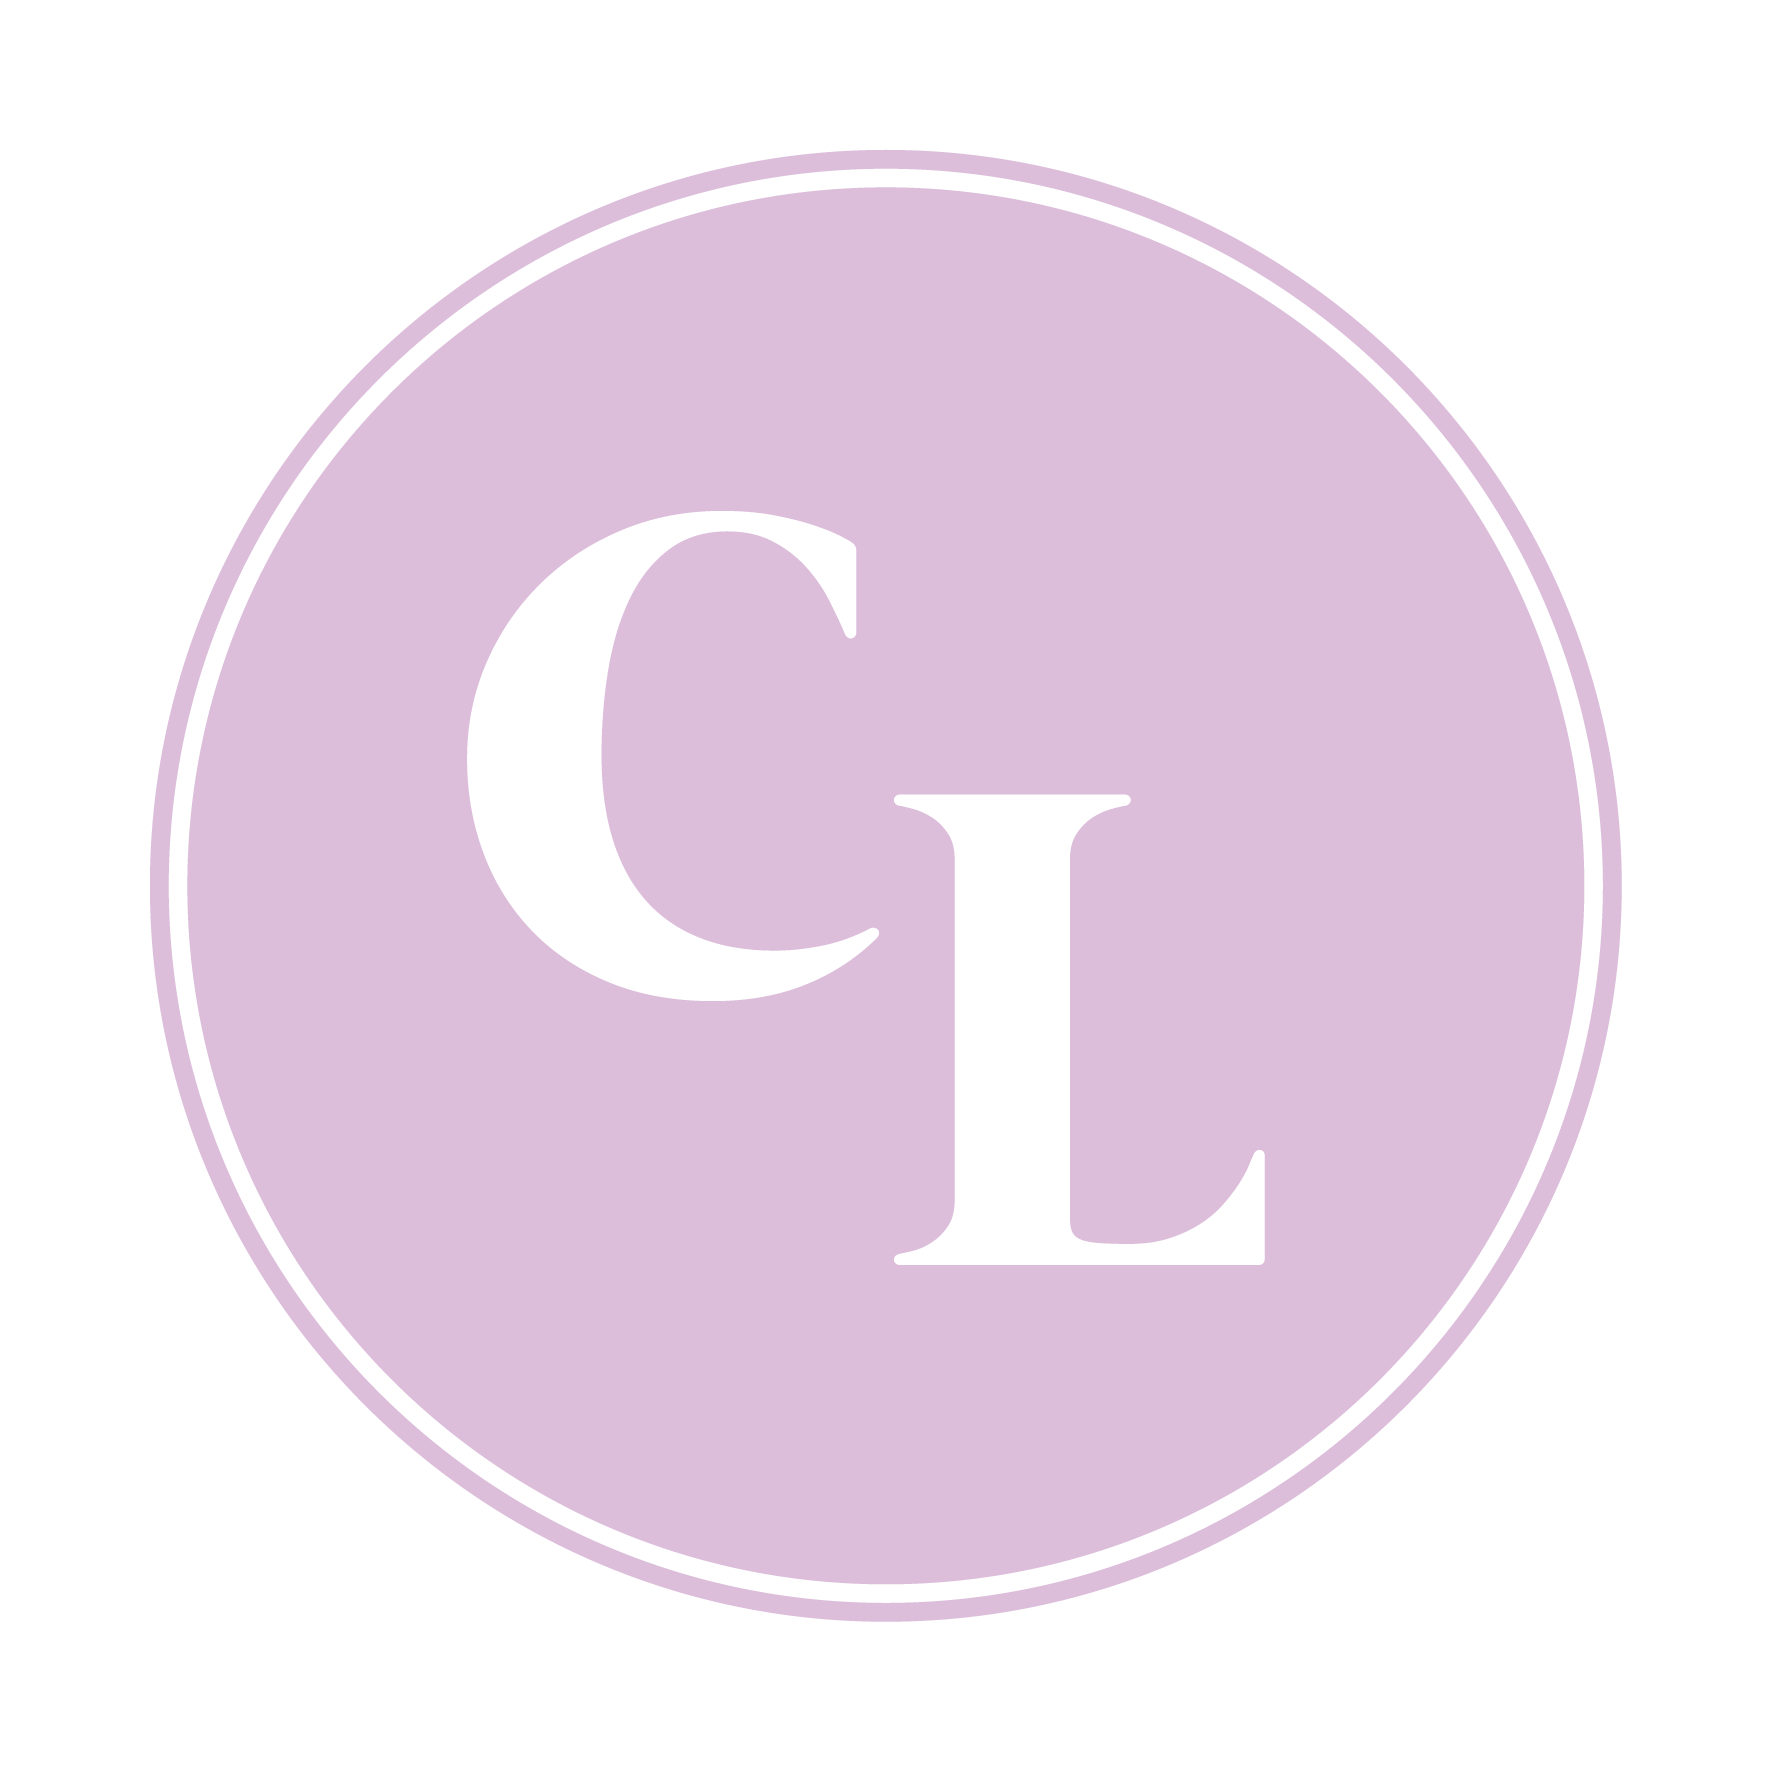 CLM-logo-transparent 14.png